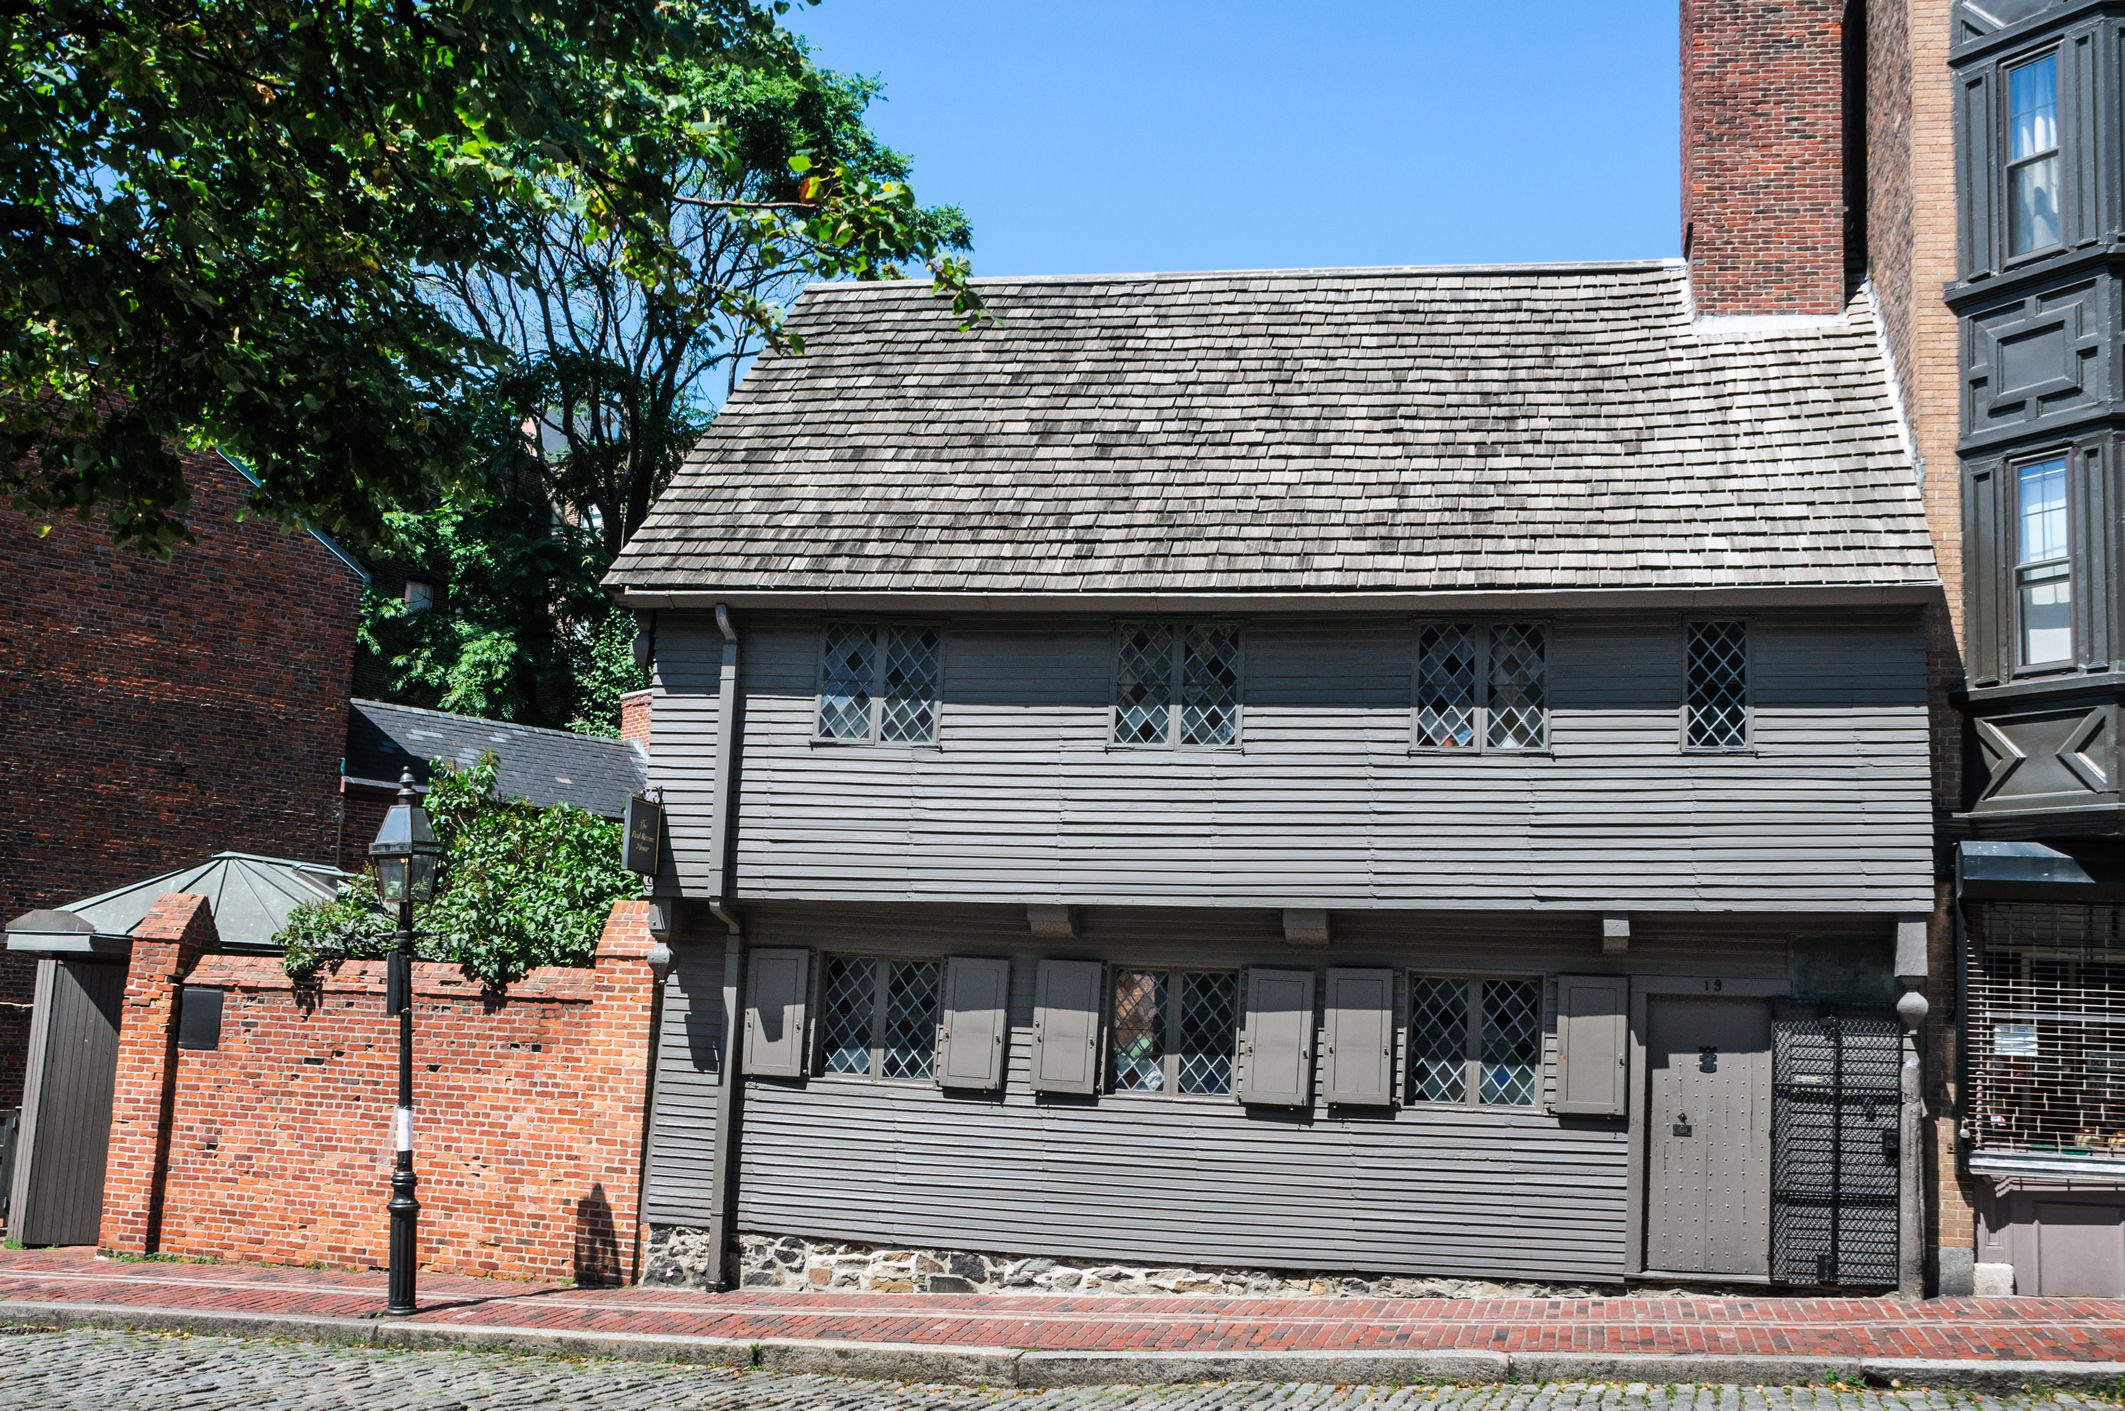 the Paul Revere House is the oldest house in downtown Boston.